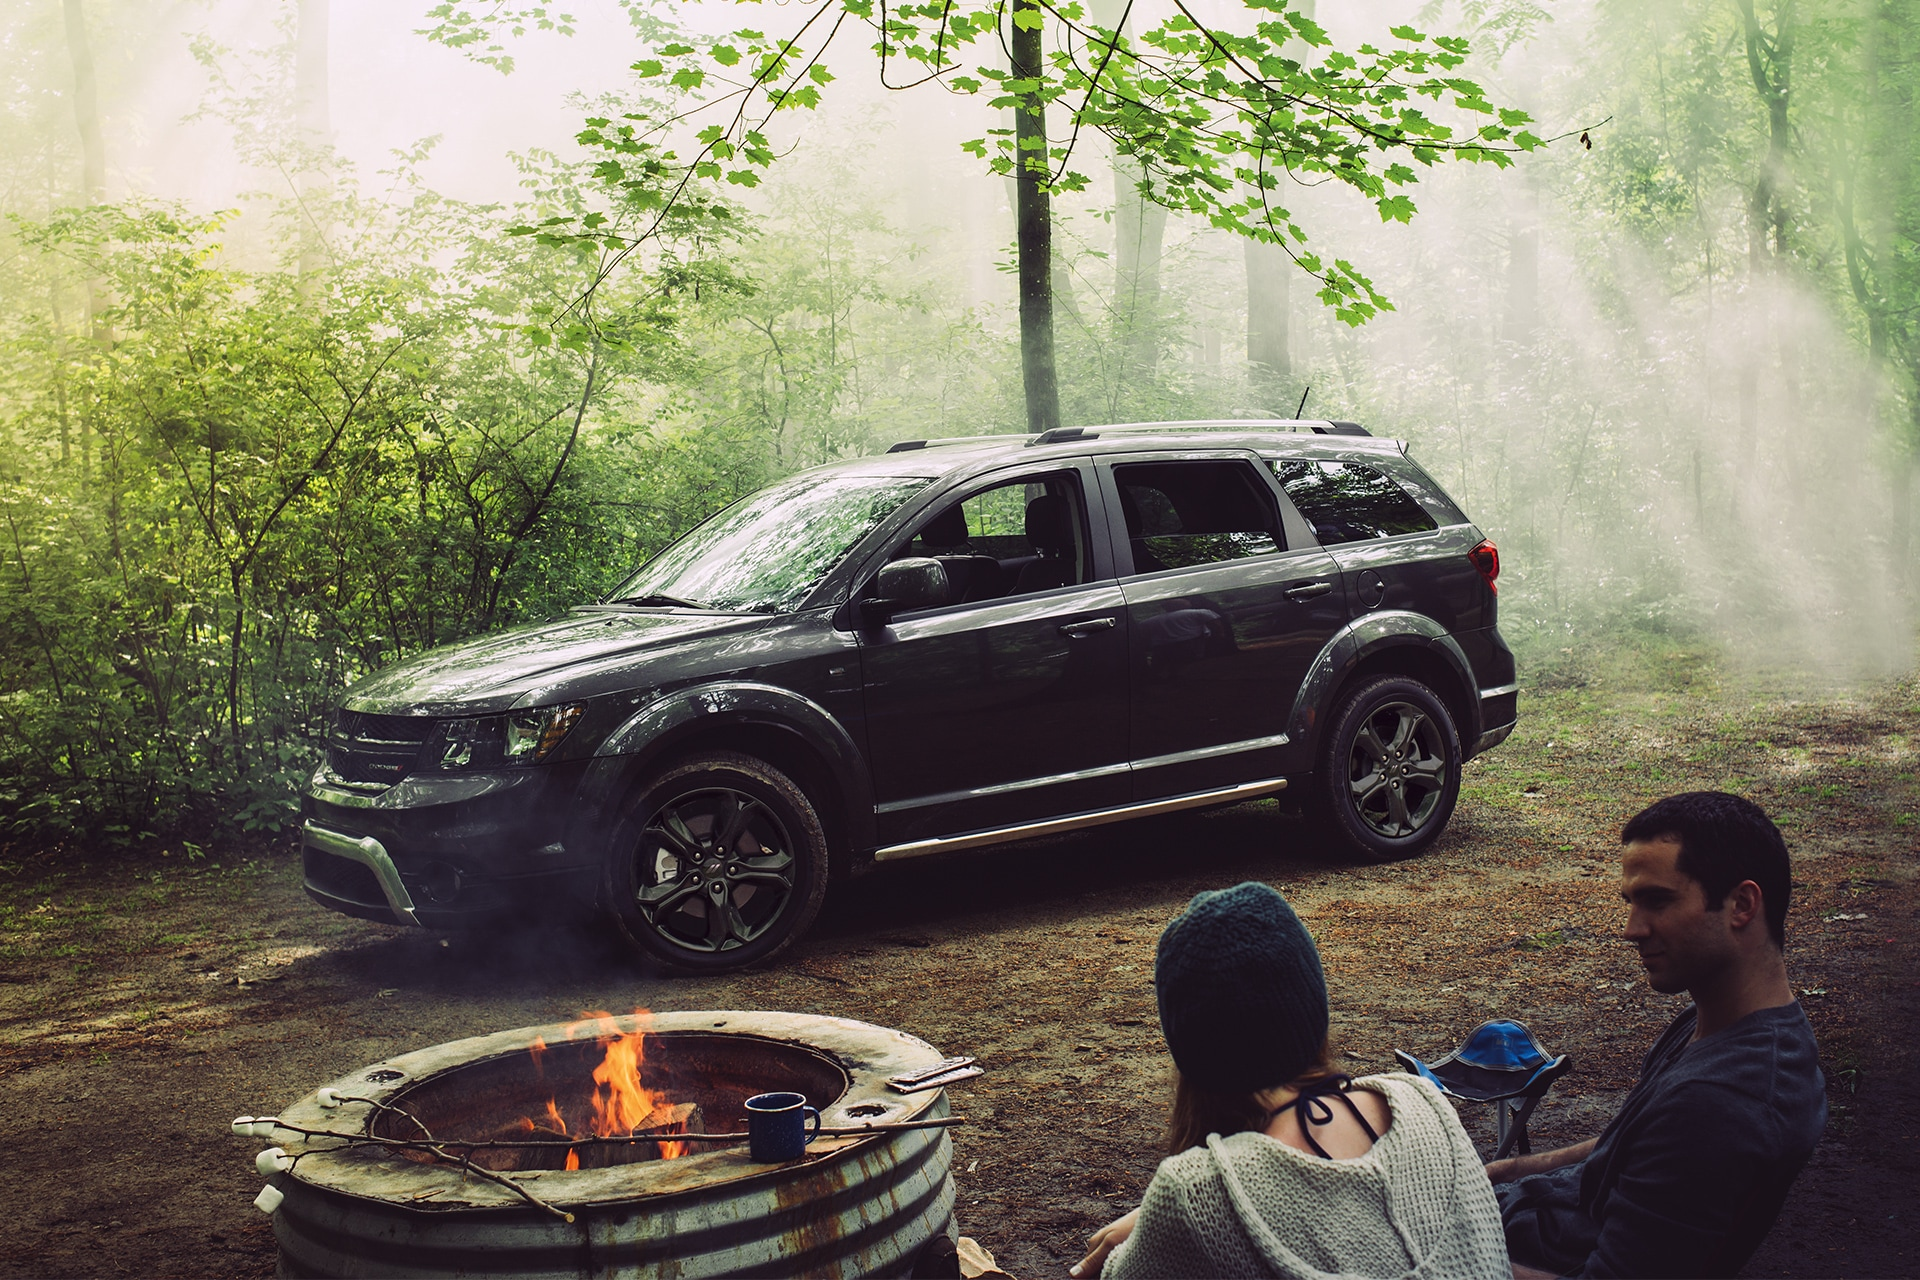 Dodge Journey 2020 et camping en nature